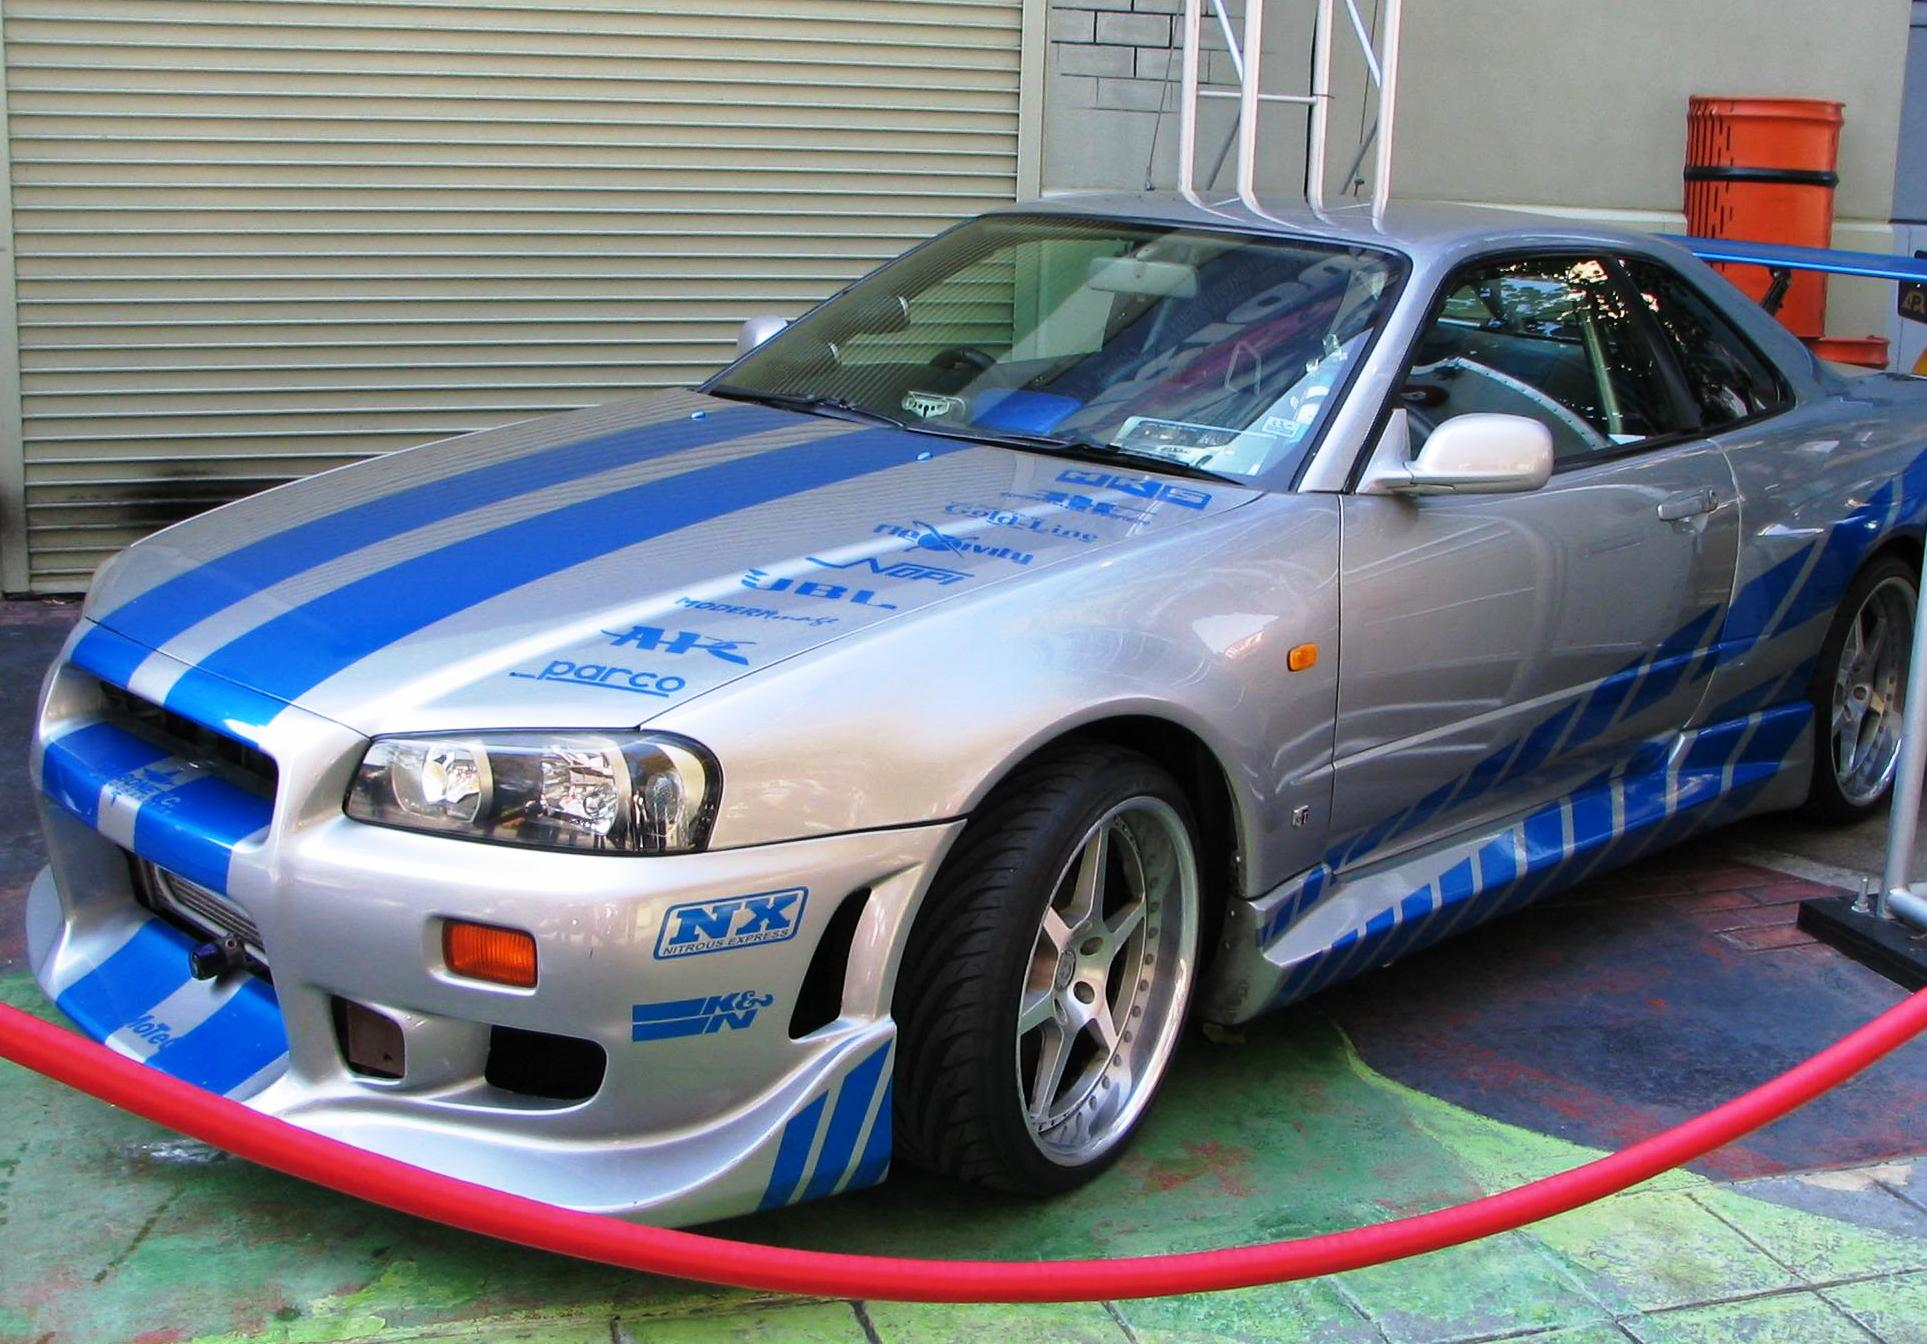 Image - Nissan Skyline GT-R R34 from 2F2F.jpg | The Fast and the ...